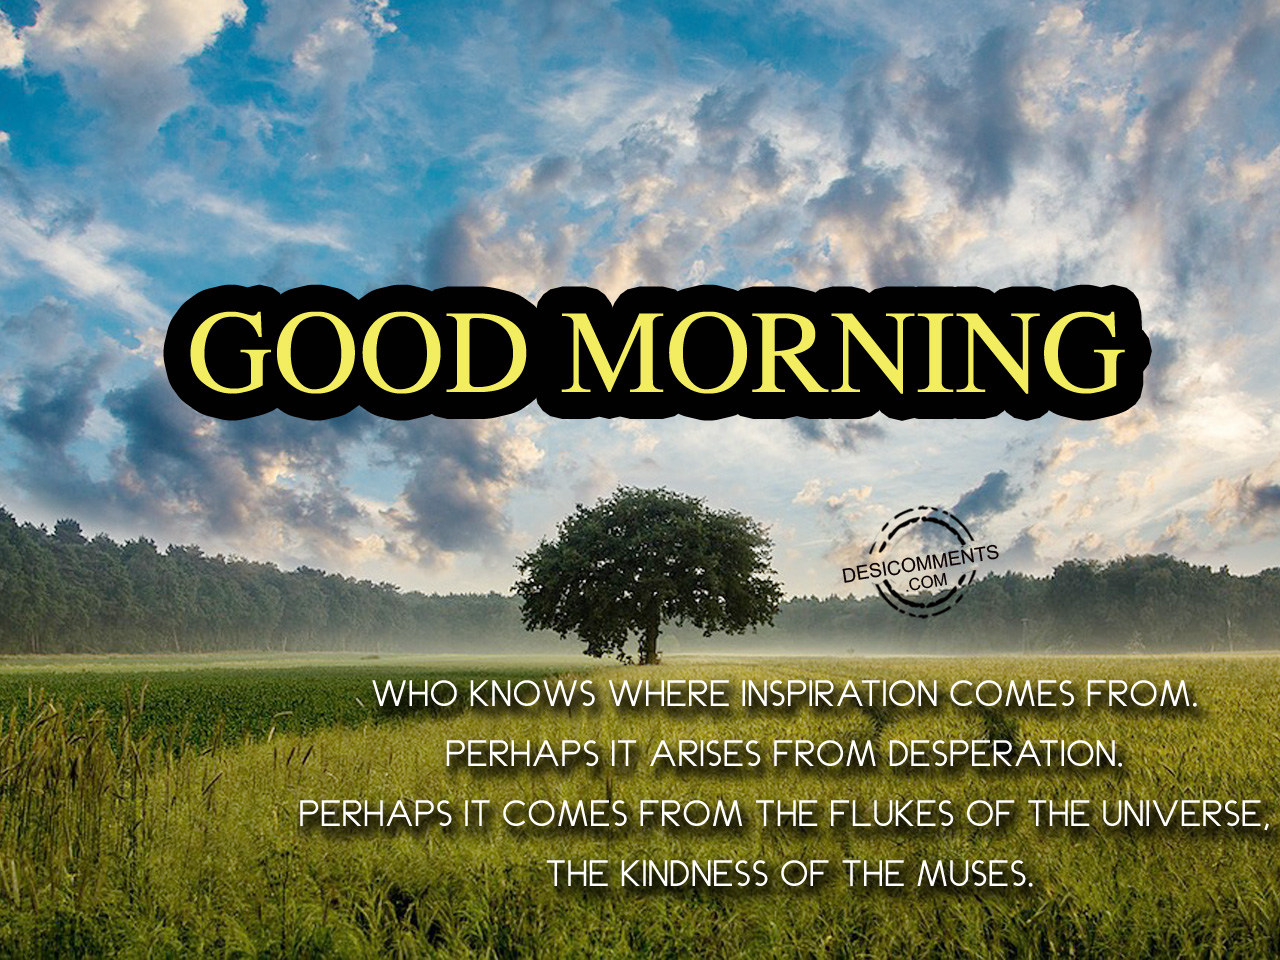 Good Morning Pictures For Whatsapp : Good morning pictures images graphics for facebook whatsapp